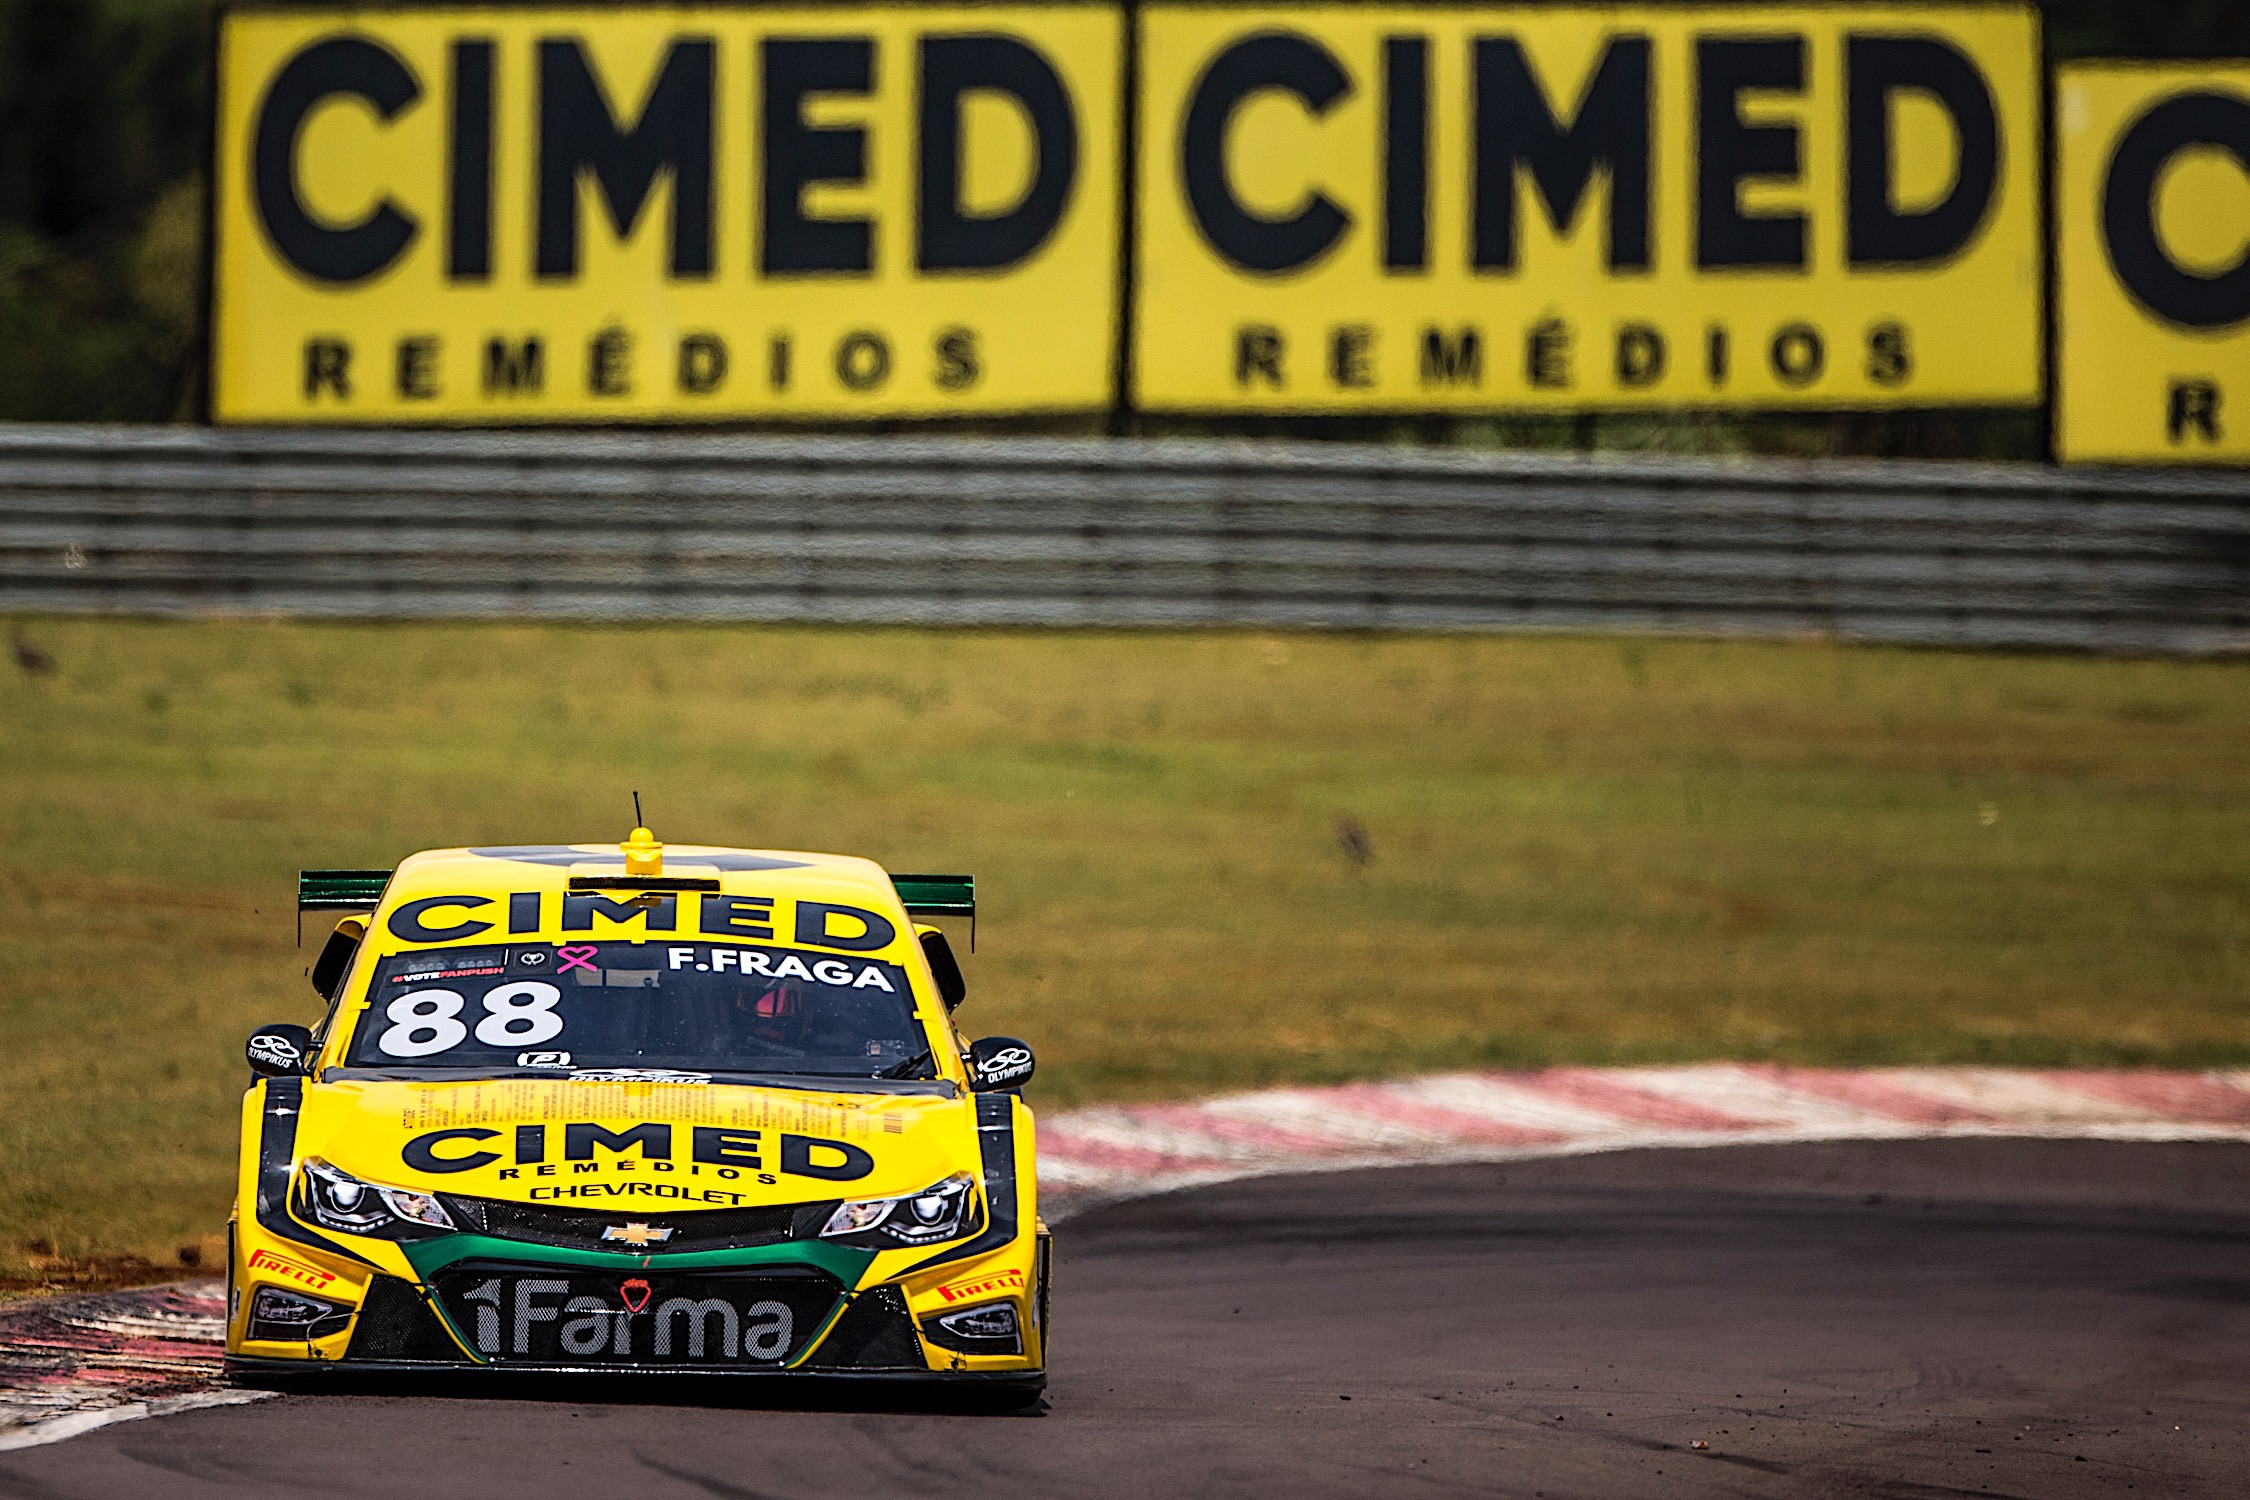 Photo of Stock Car – Felipe Fraga vence em Cascavel e Cimed Racing também sobe no pódio com Cacá Bueno